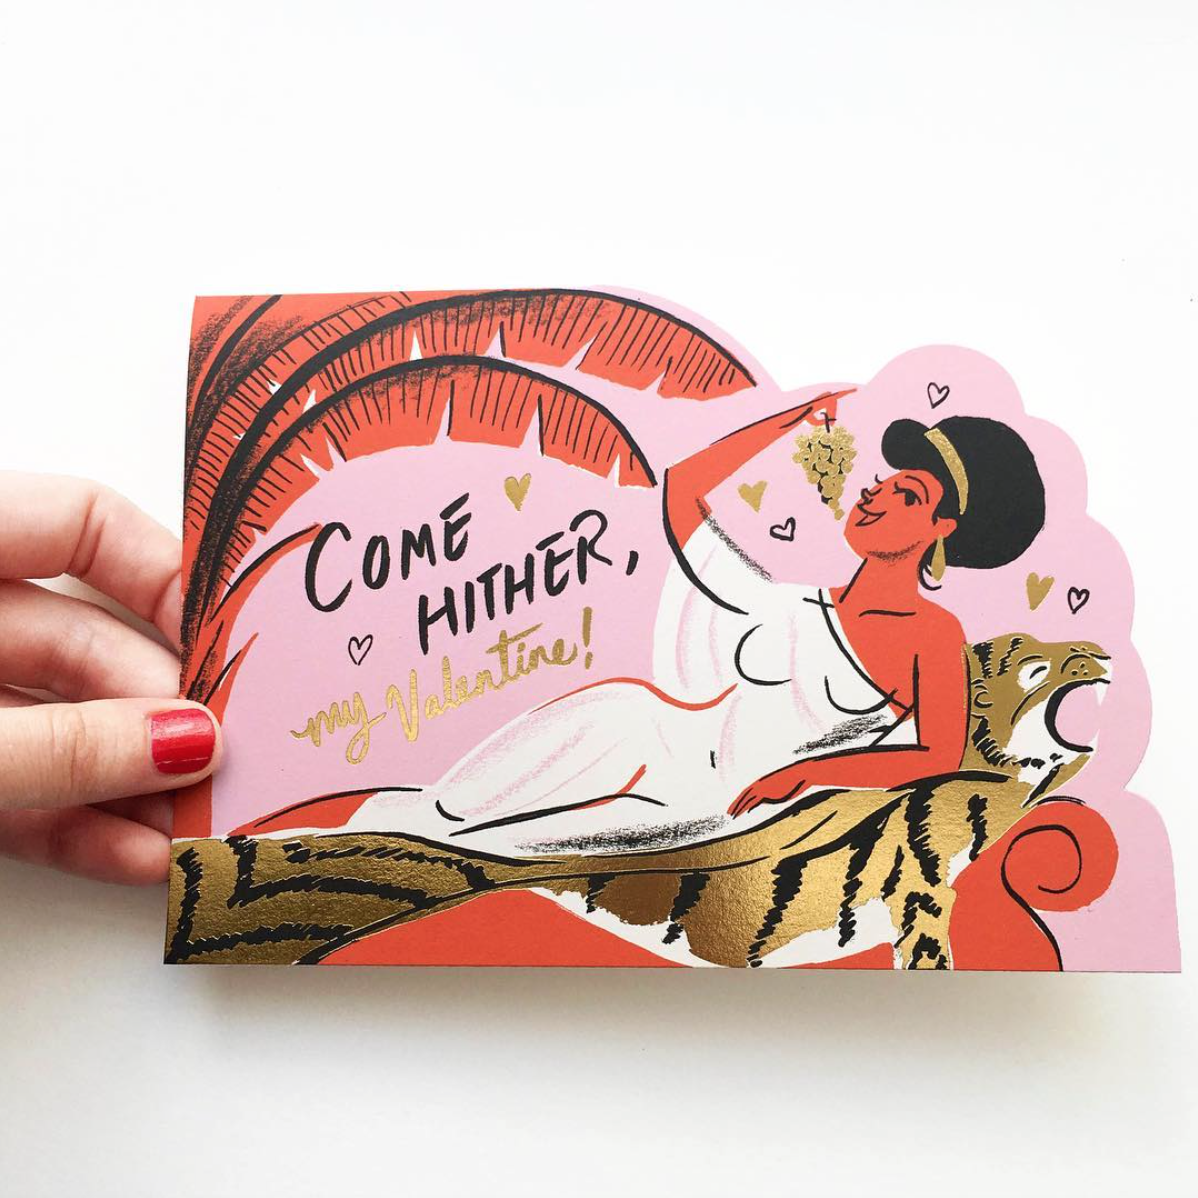 Cleo Die Cut Card By Nicholas John Frith